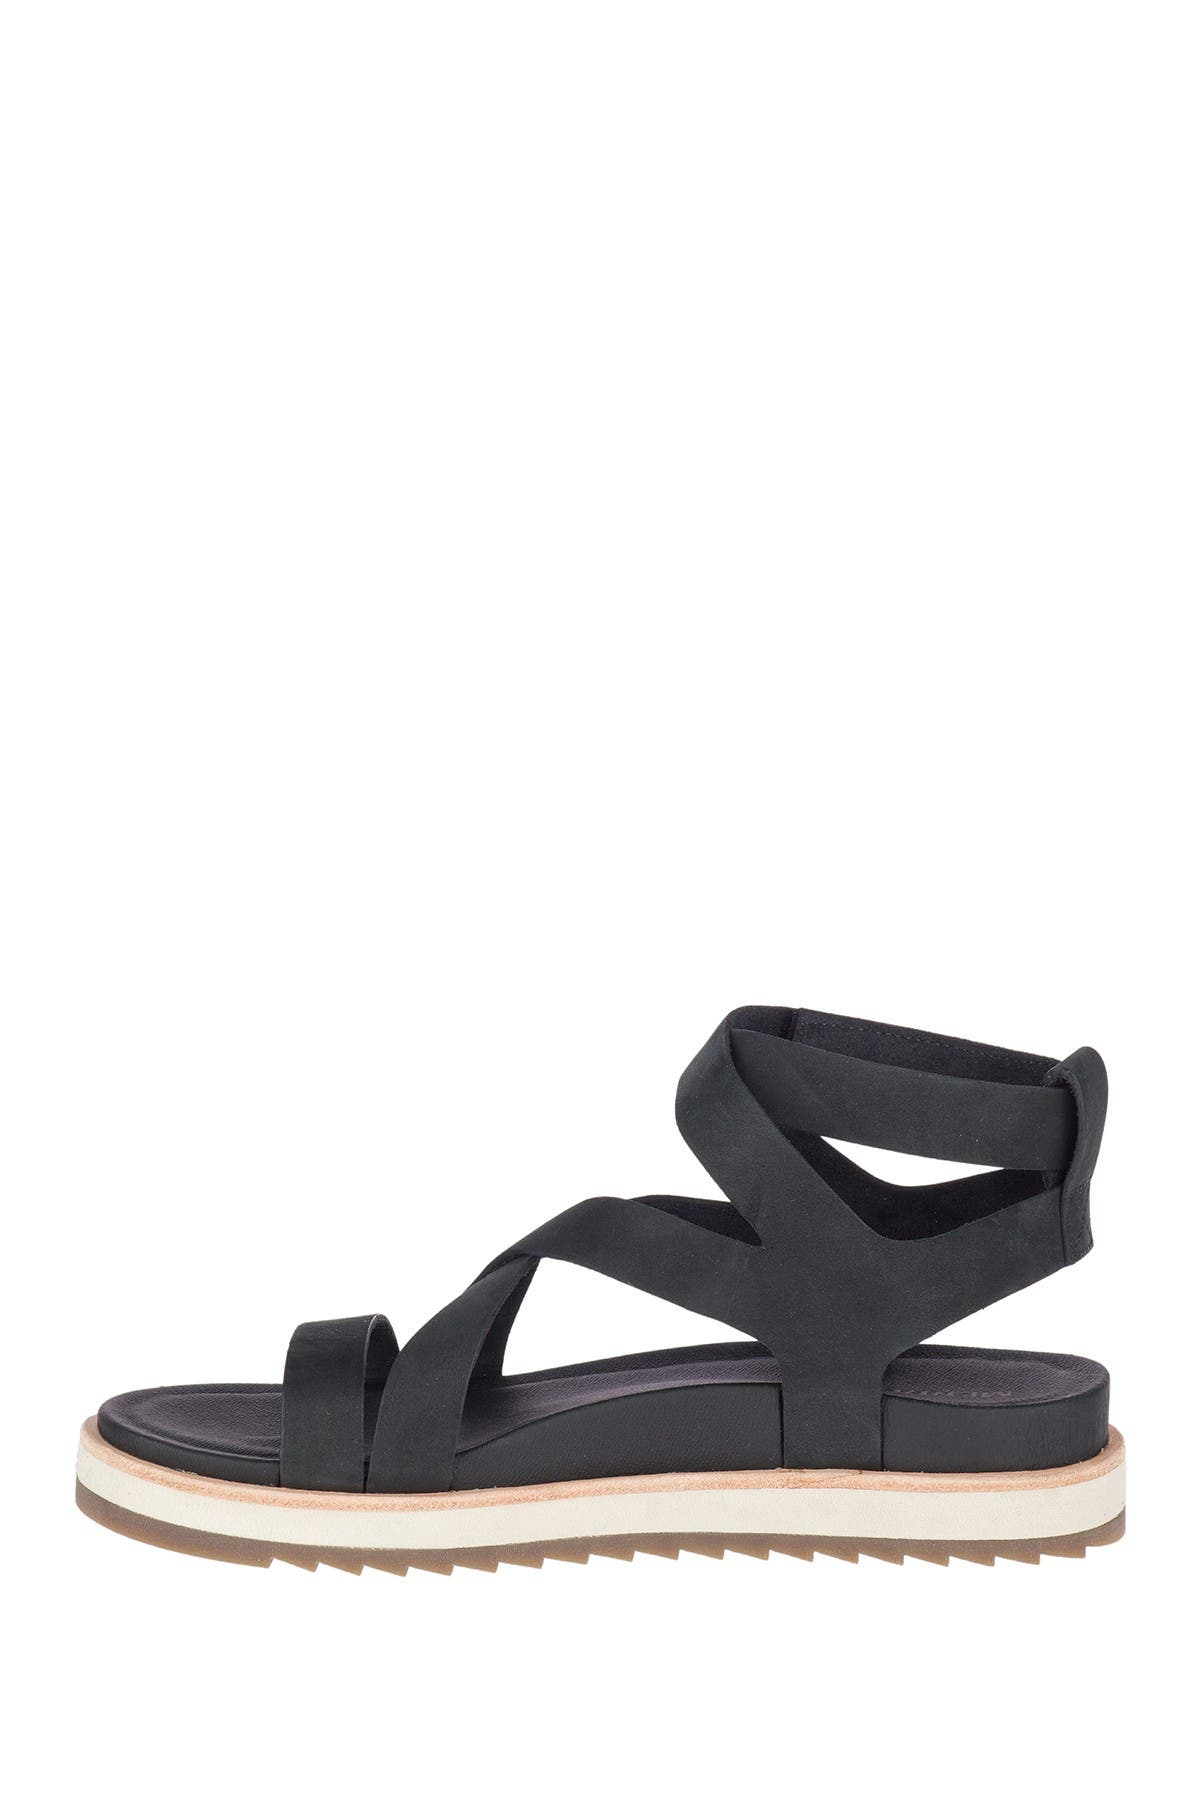 Image of Merrell Juno Mid Leather Strappy Sandal